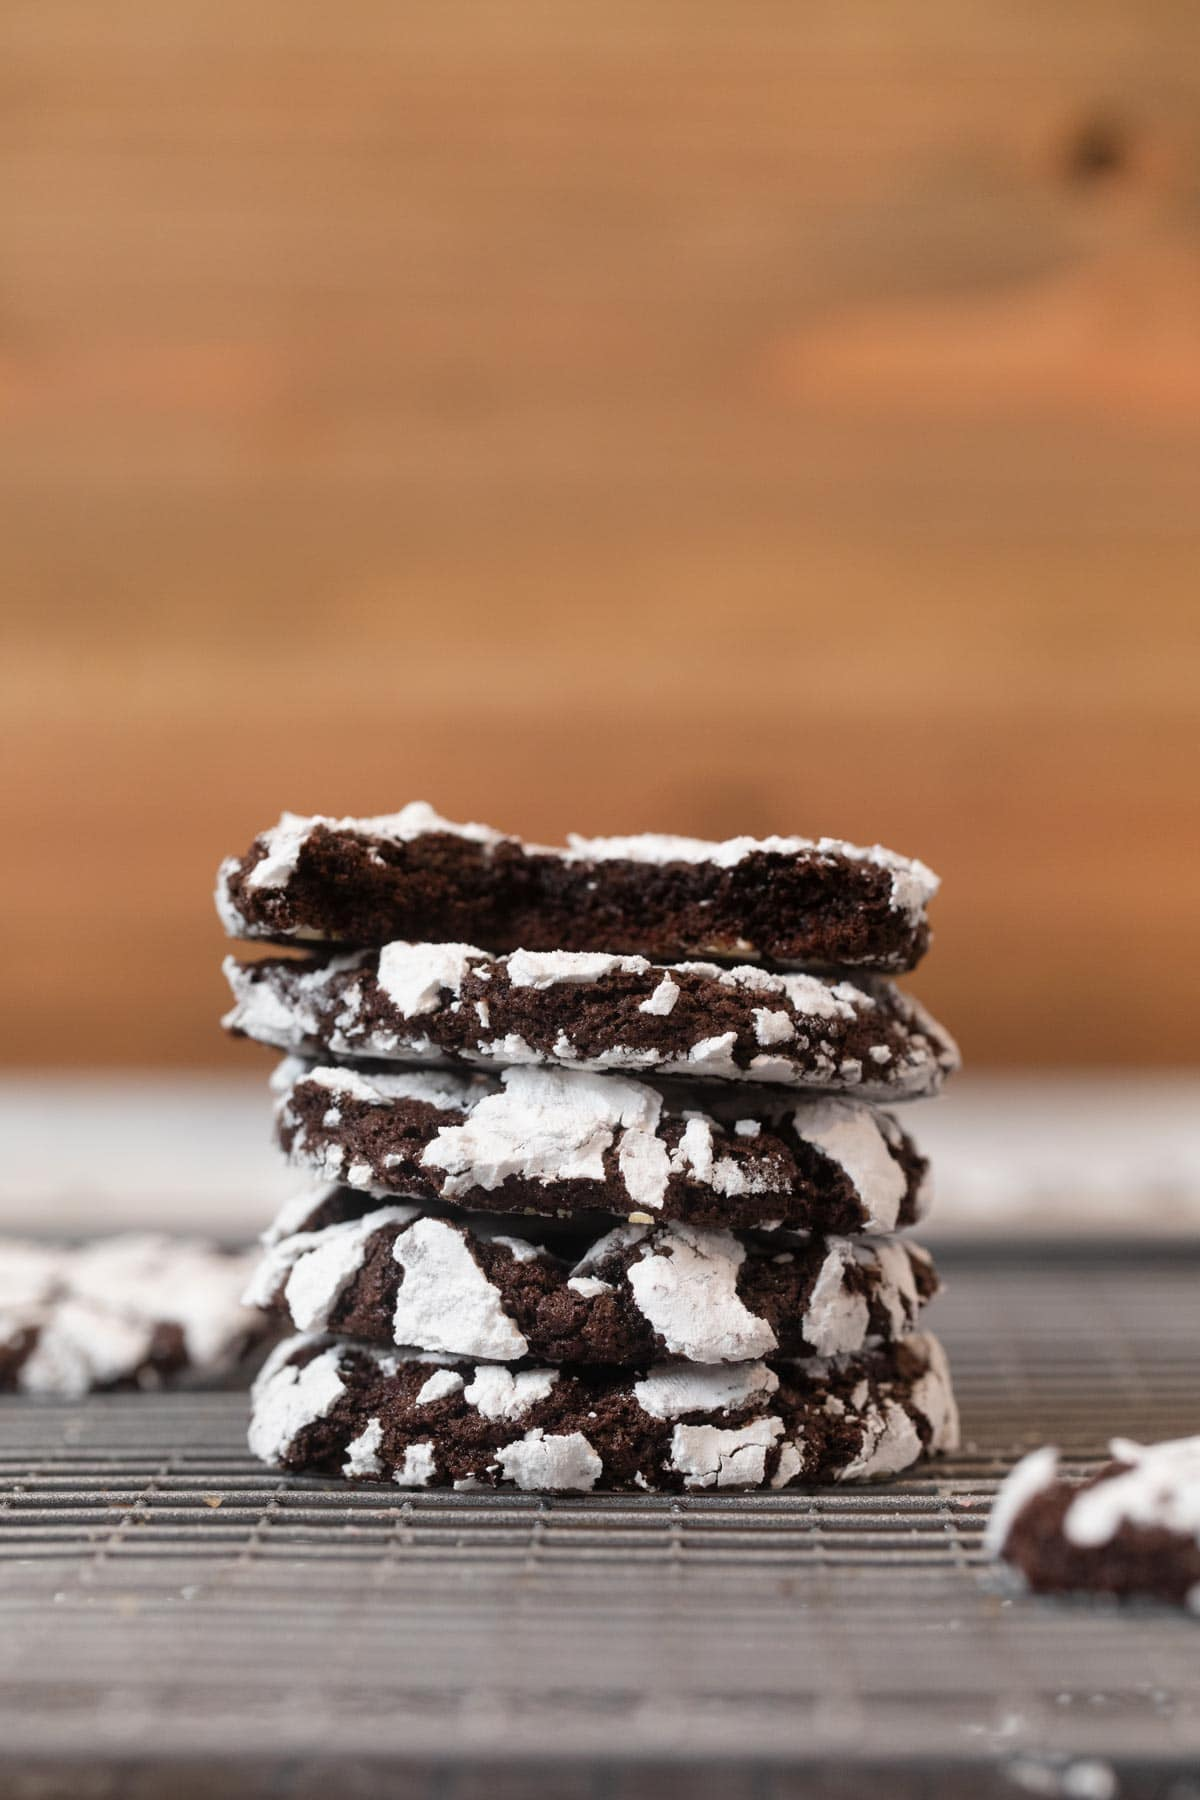 Chocolate Crinkle Cookies in stack with top cookie bitten in half